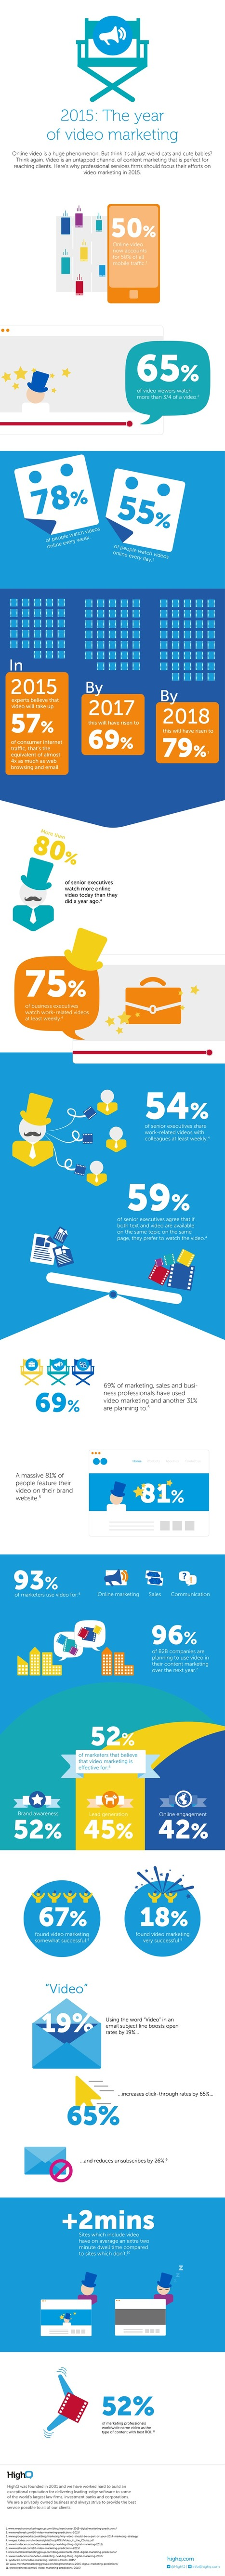 Is Video the Future of Social Marketing? #INFOGRAPHIC | MarketingHits | Scoop.it